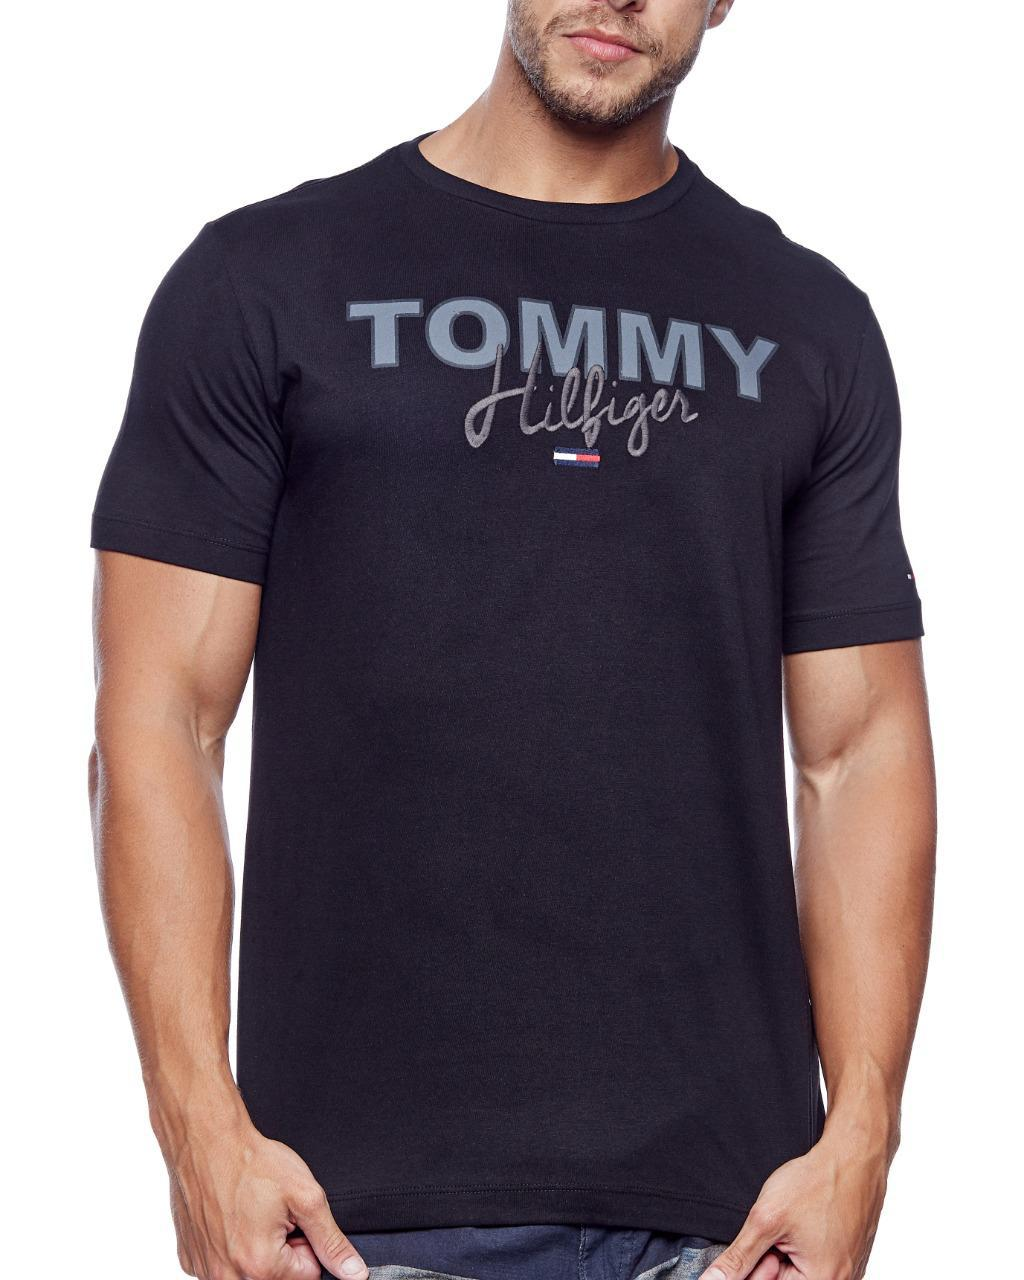 Camiseta Tommy Hilfiger Masculina Custom Fit Lettering Embroidery Preto